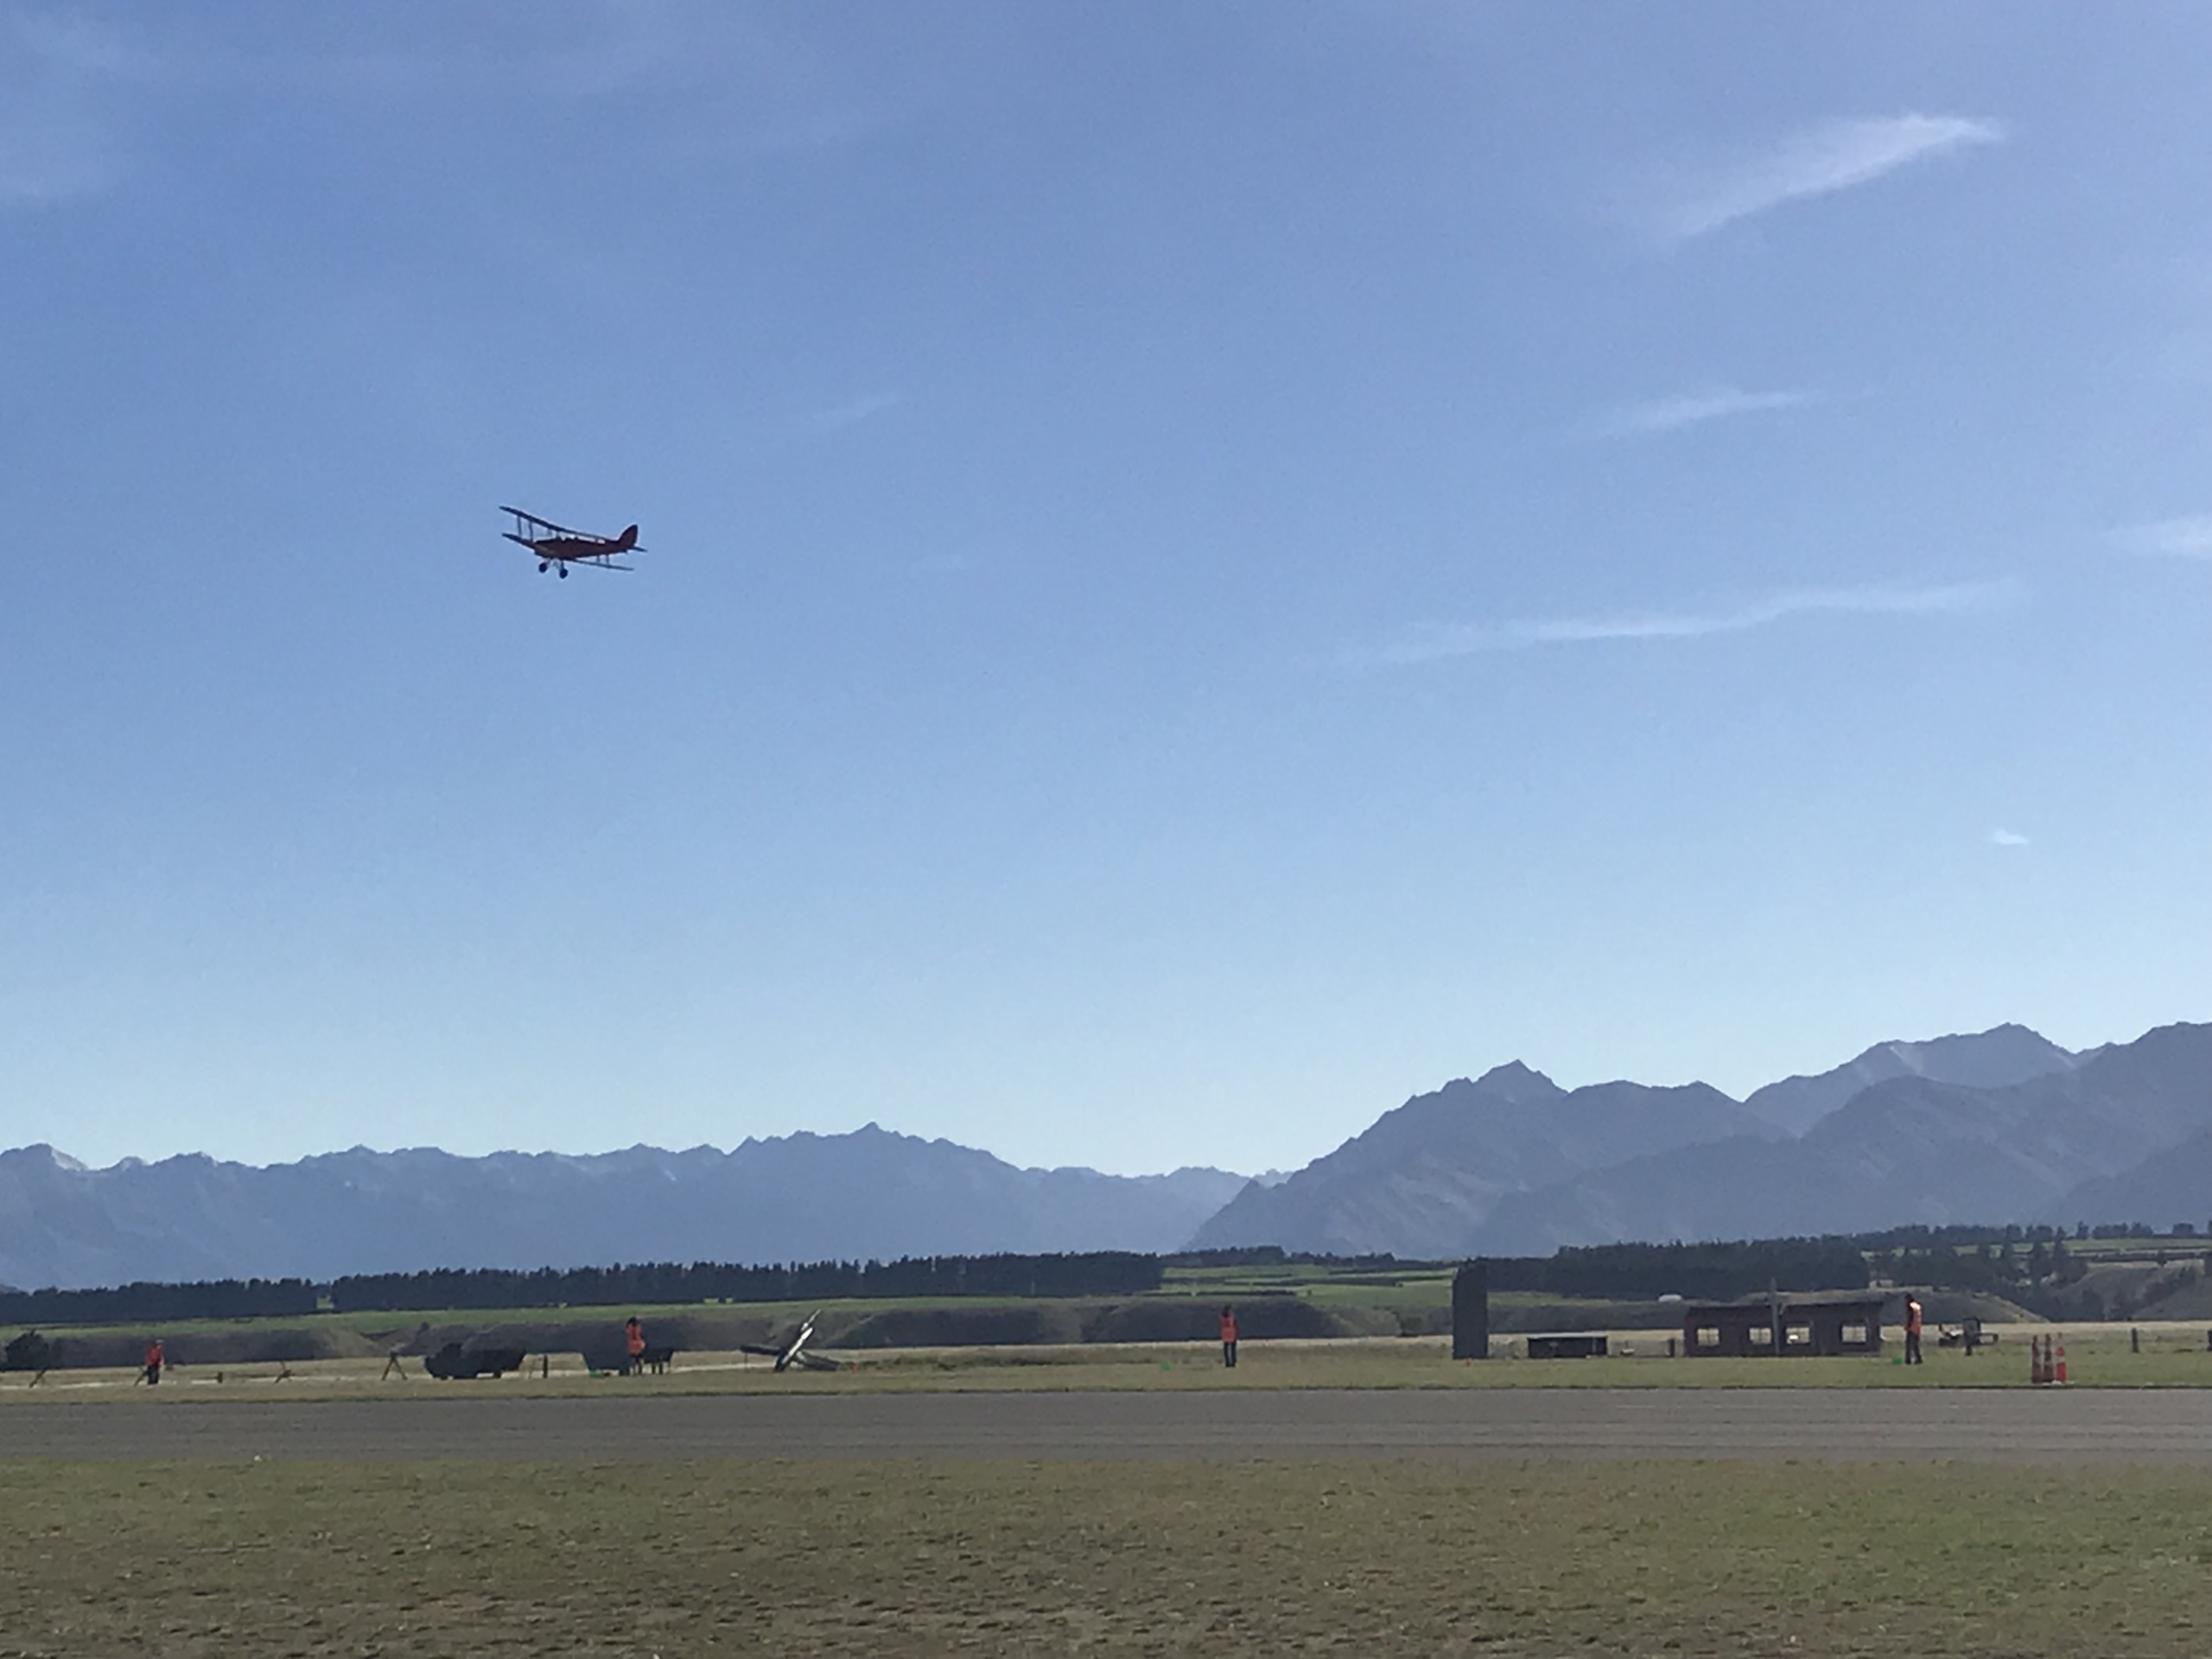 Local bodies seek feedback on Wanaka Airport expansion plans